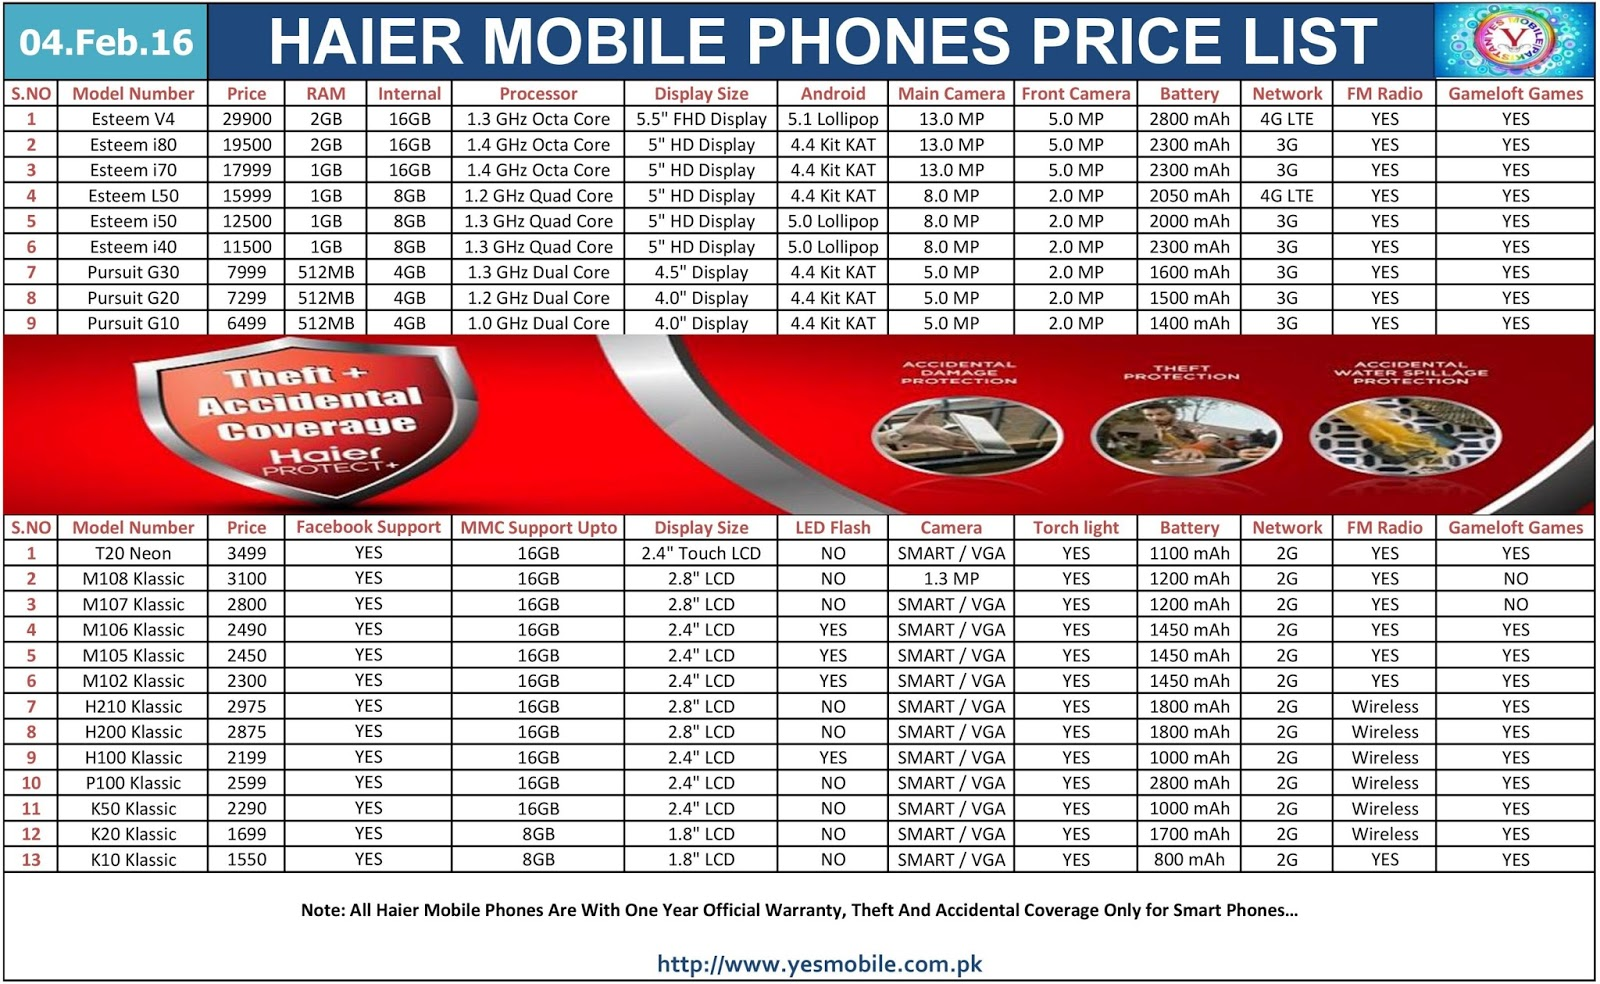 All Haier Mobiles Phones Prices in Pakistan | Daily Mobile